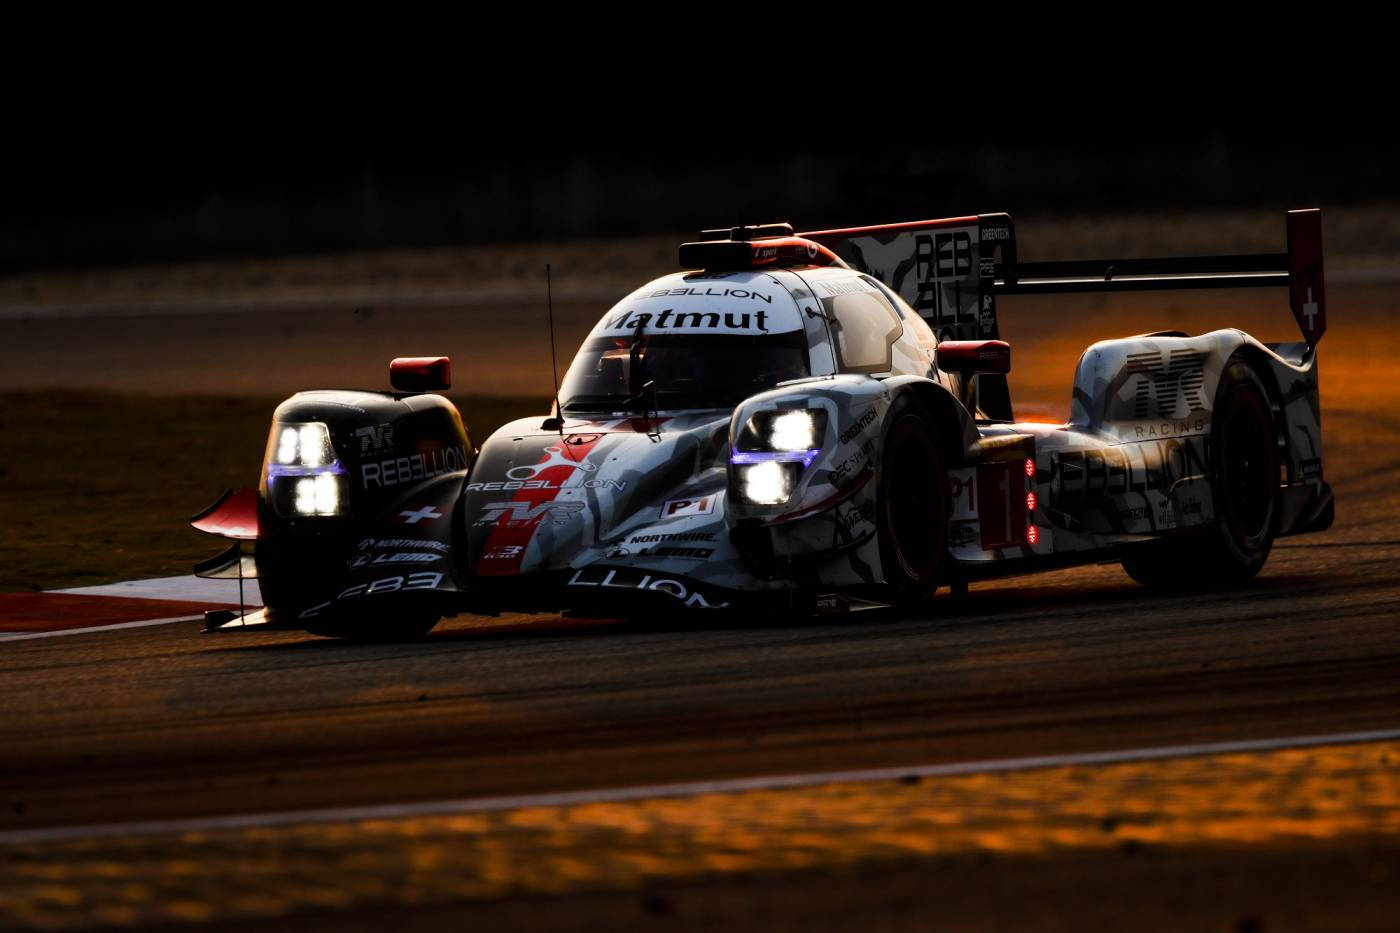 Team Rebellion's ORECA wins its first victory in WEC